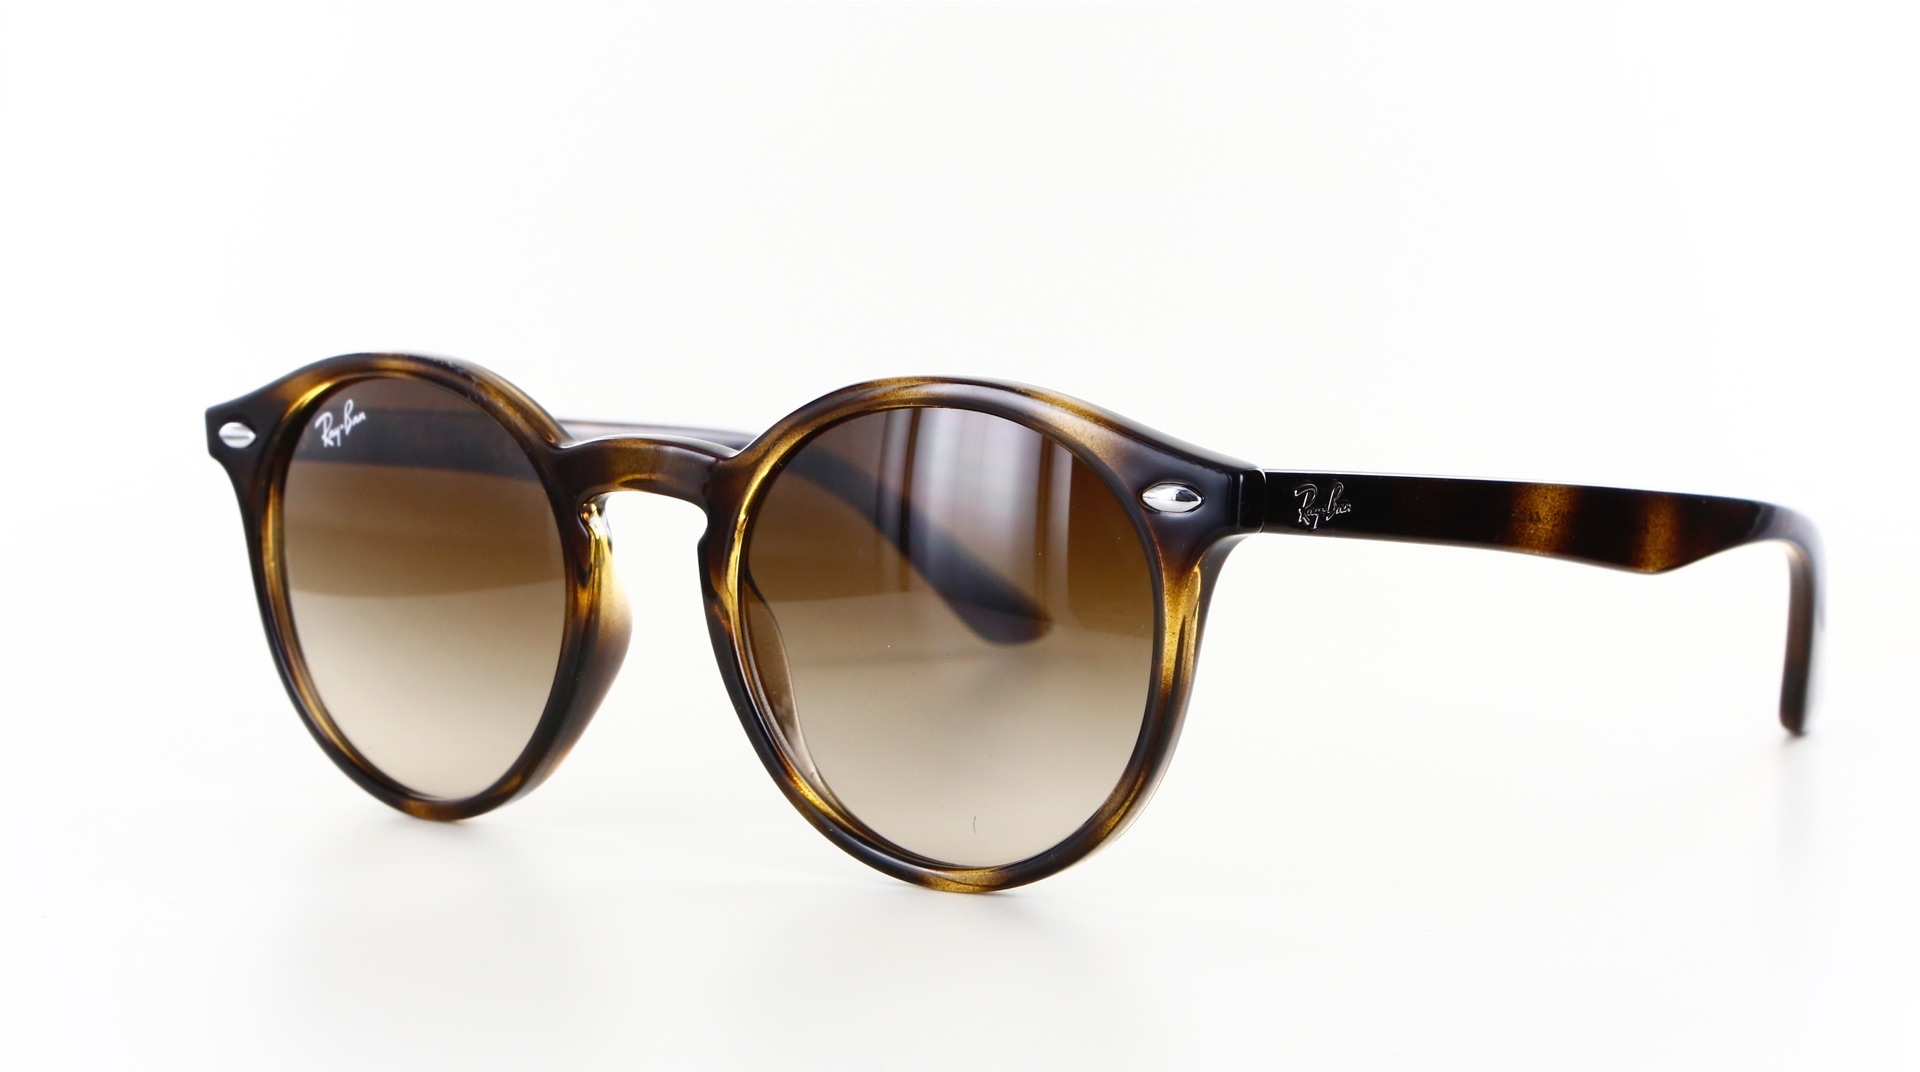 Ray-Ban - ref: 76905